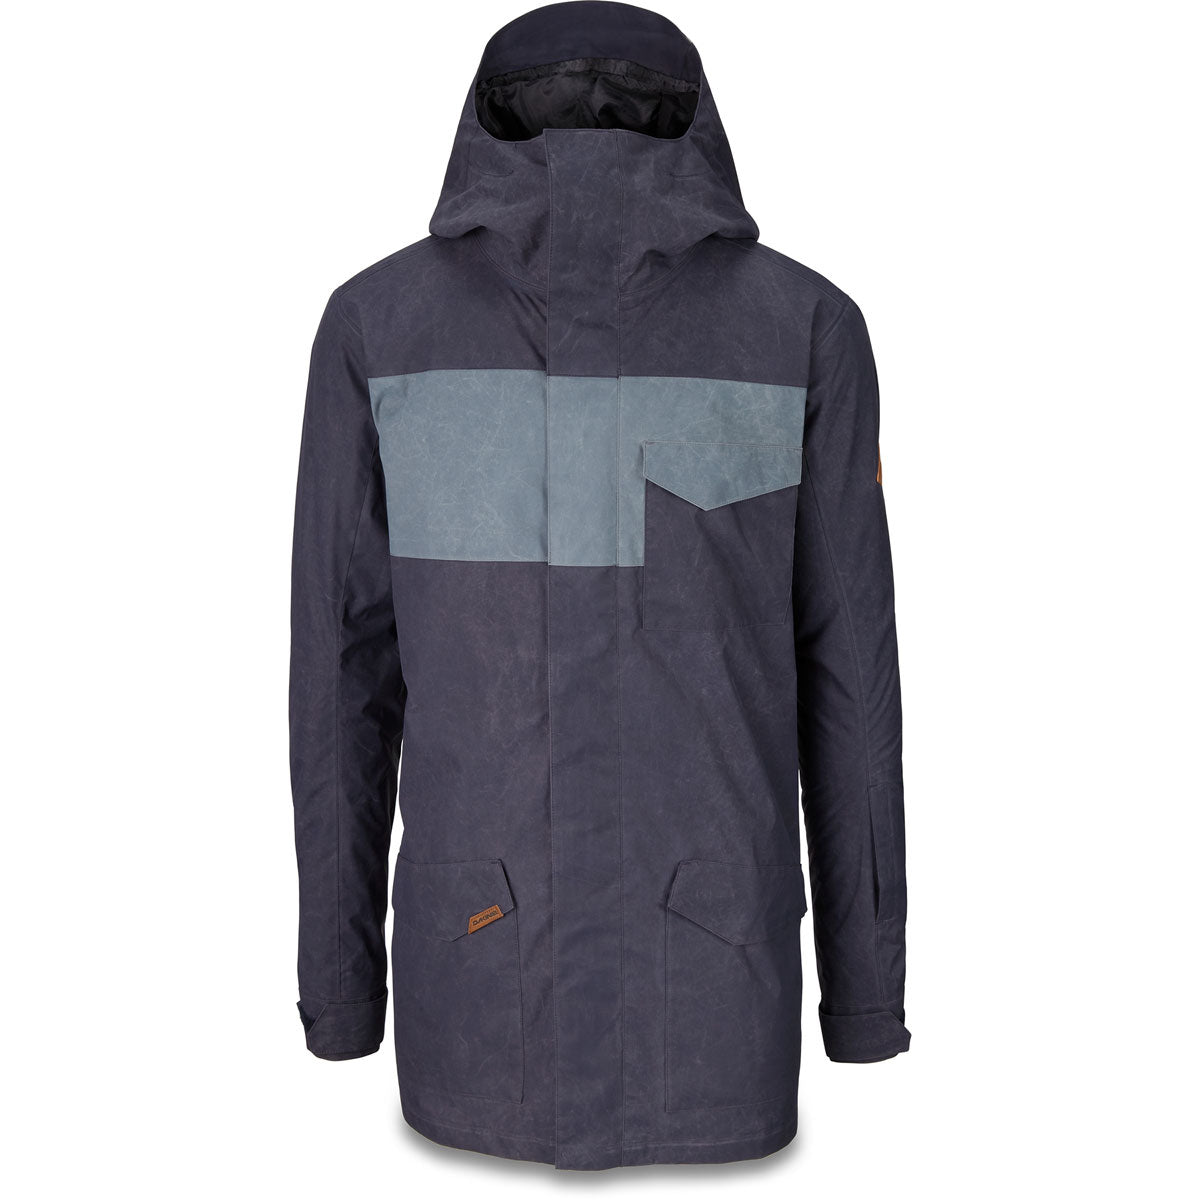 Dakine Elsman Jacket - Mens - Night/Dark